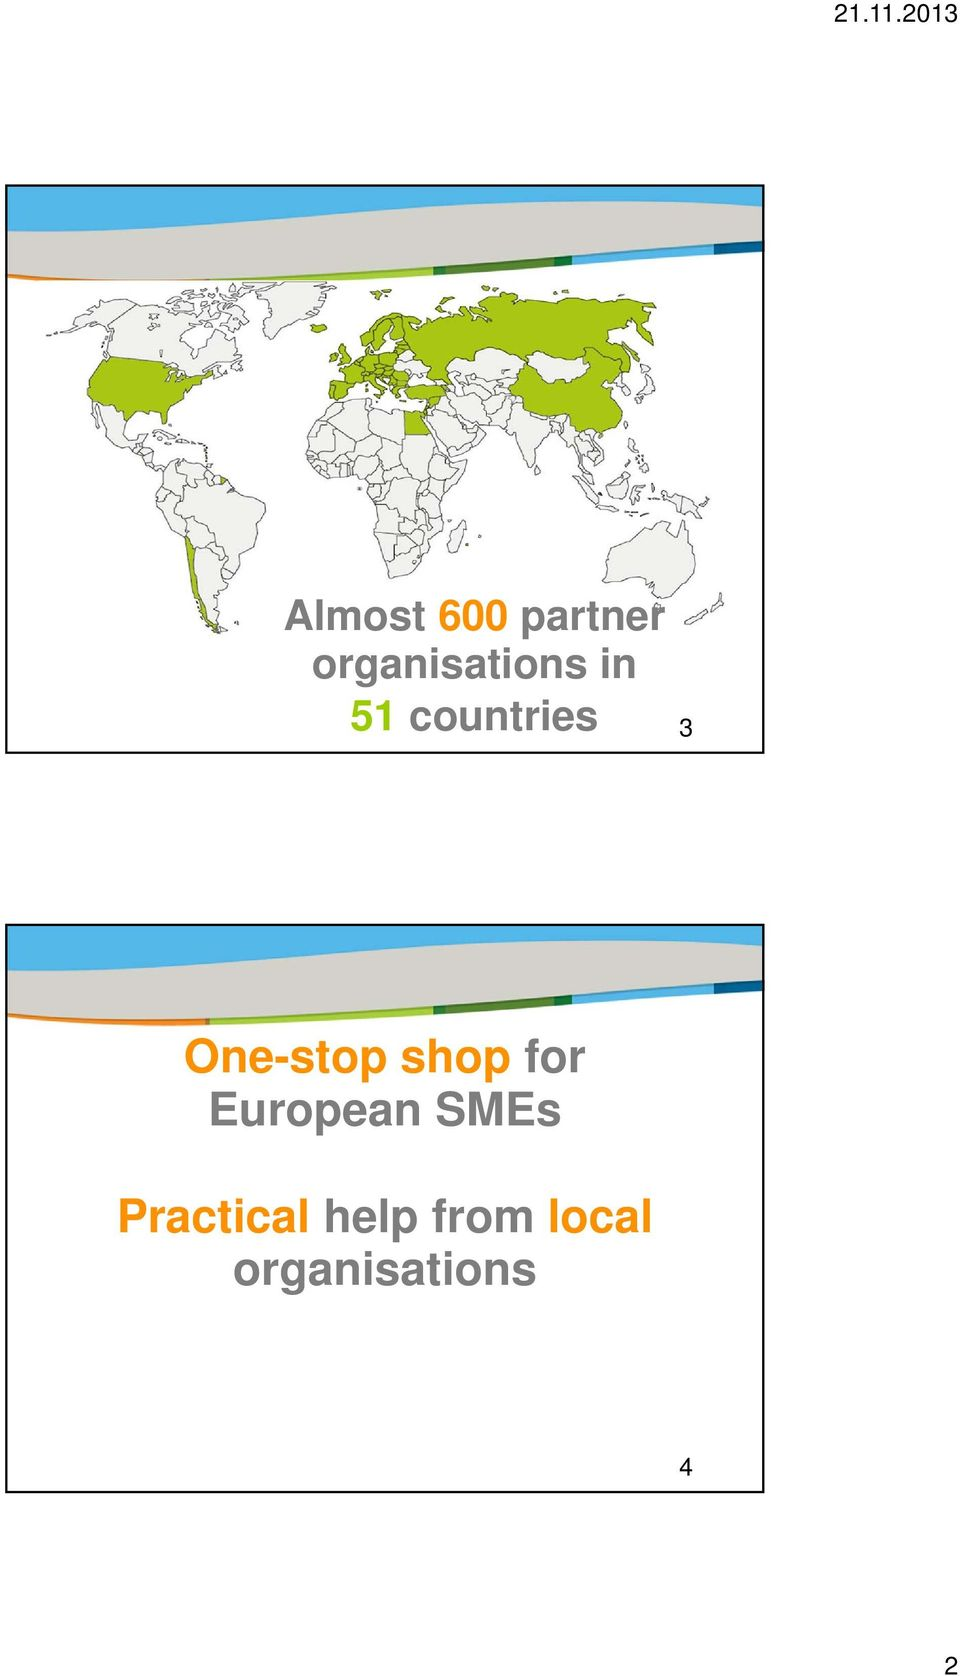 One-stop shop for European SMEs